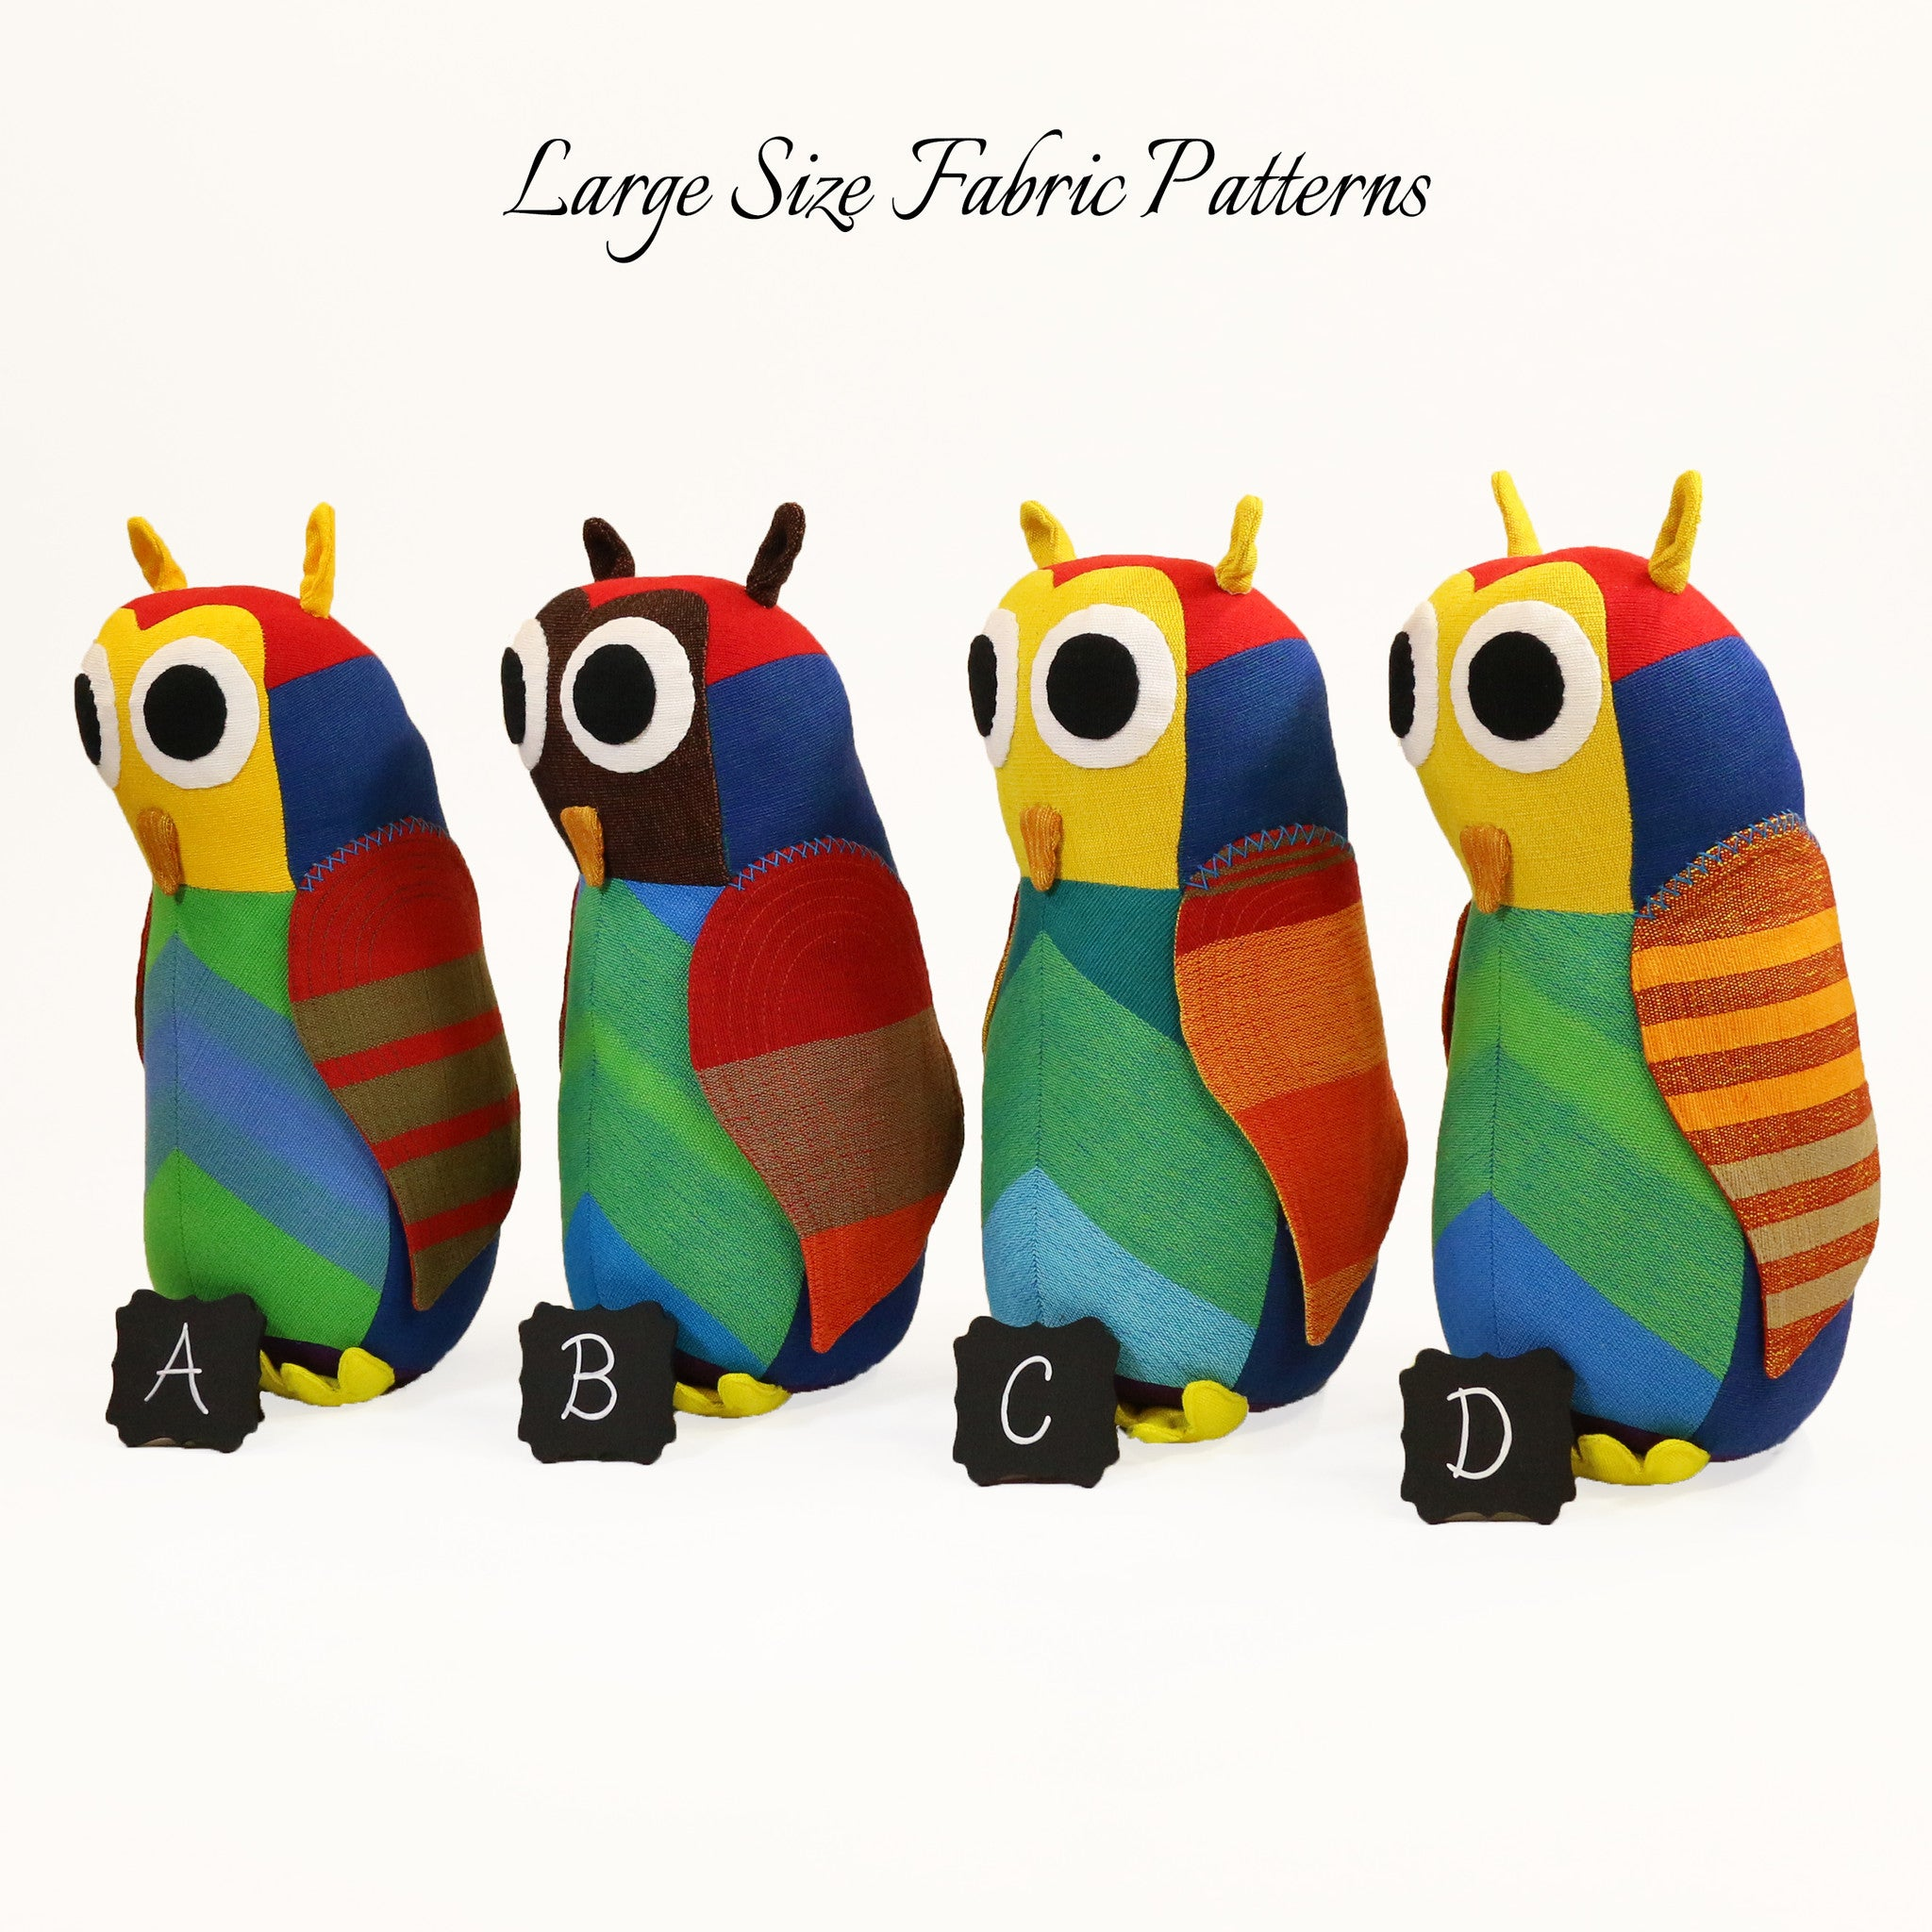 Harvey, the Owl – large size fabric patterns shown